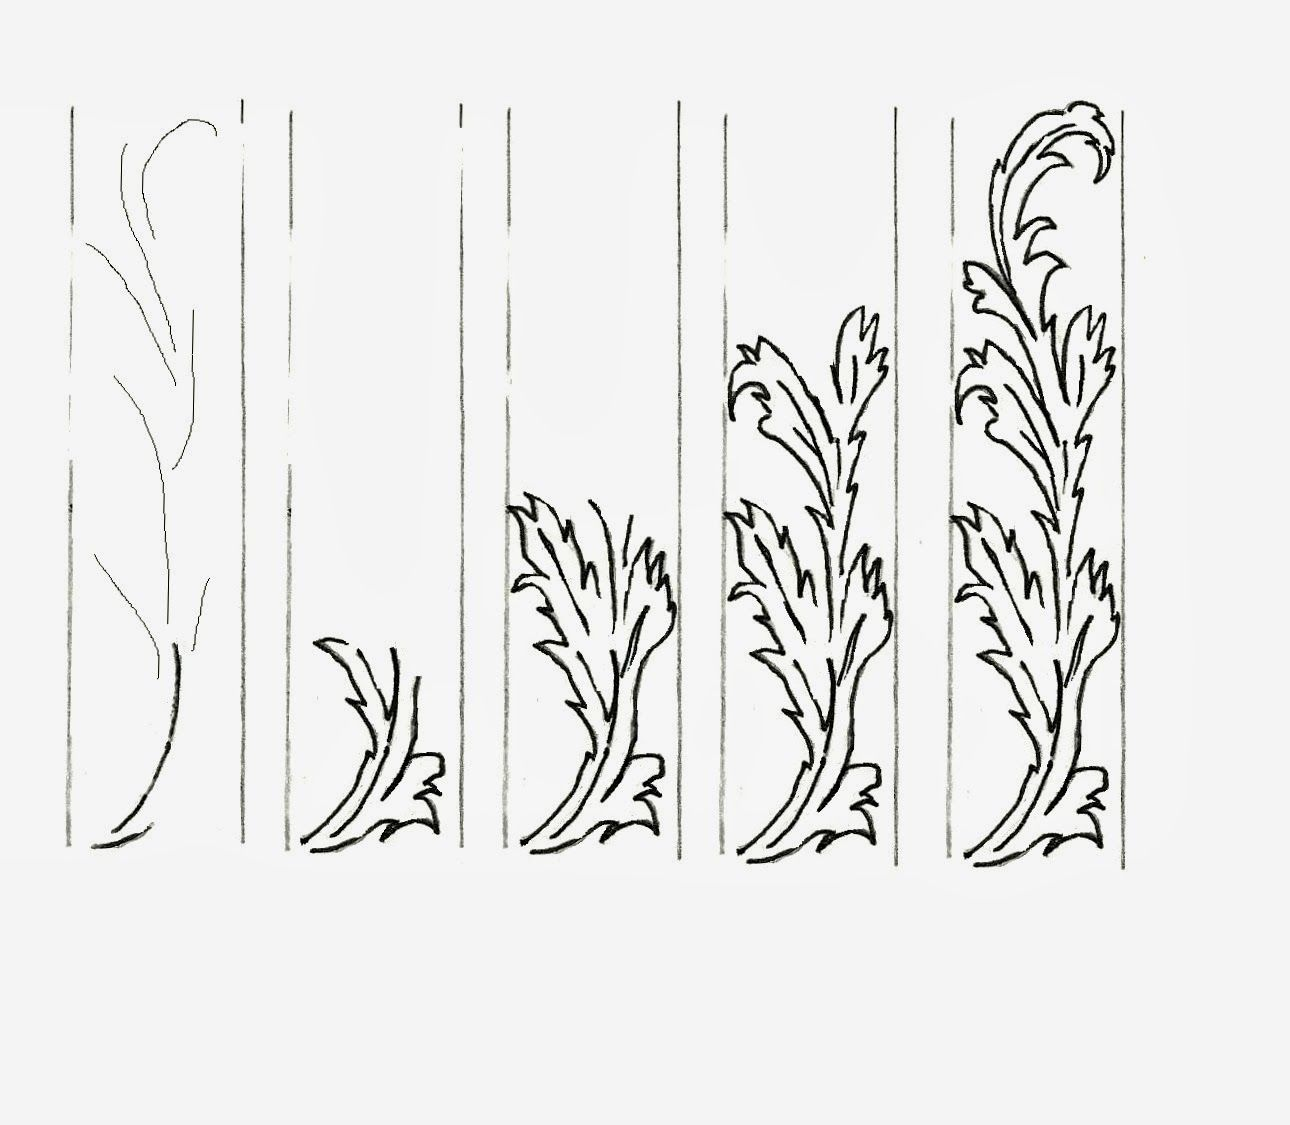 Art Class Ideas How To Draw Scrolls And Scrollwork Scrollwork Medieval Drawings Drawings